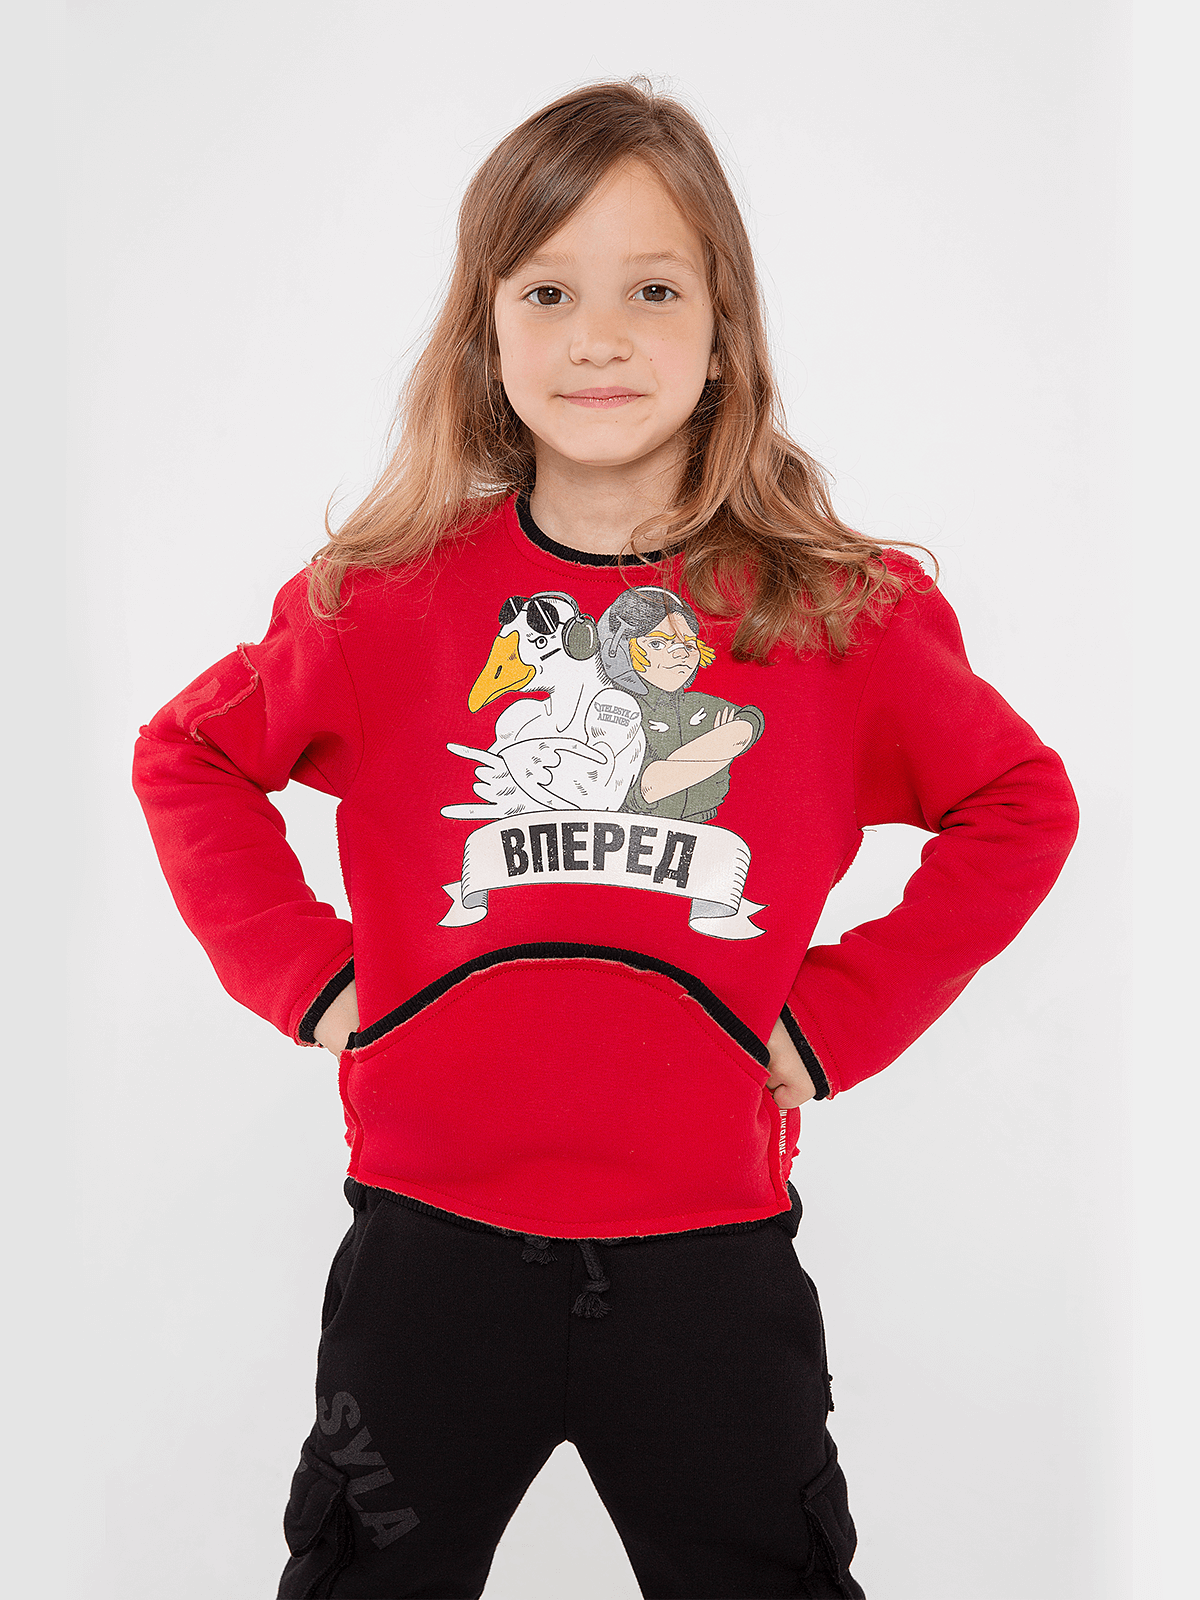 Kids Sweatshirt Forward. Color red. Sweatshirt: unisex, well suited for both boys and girls.